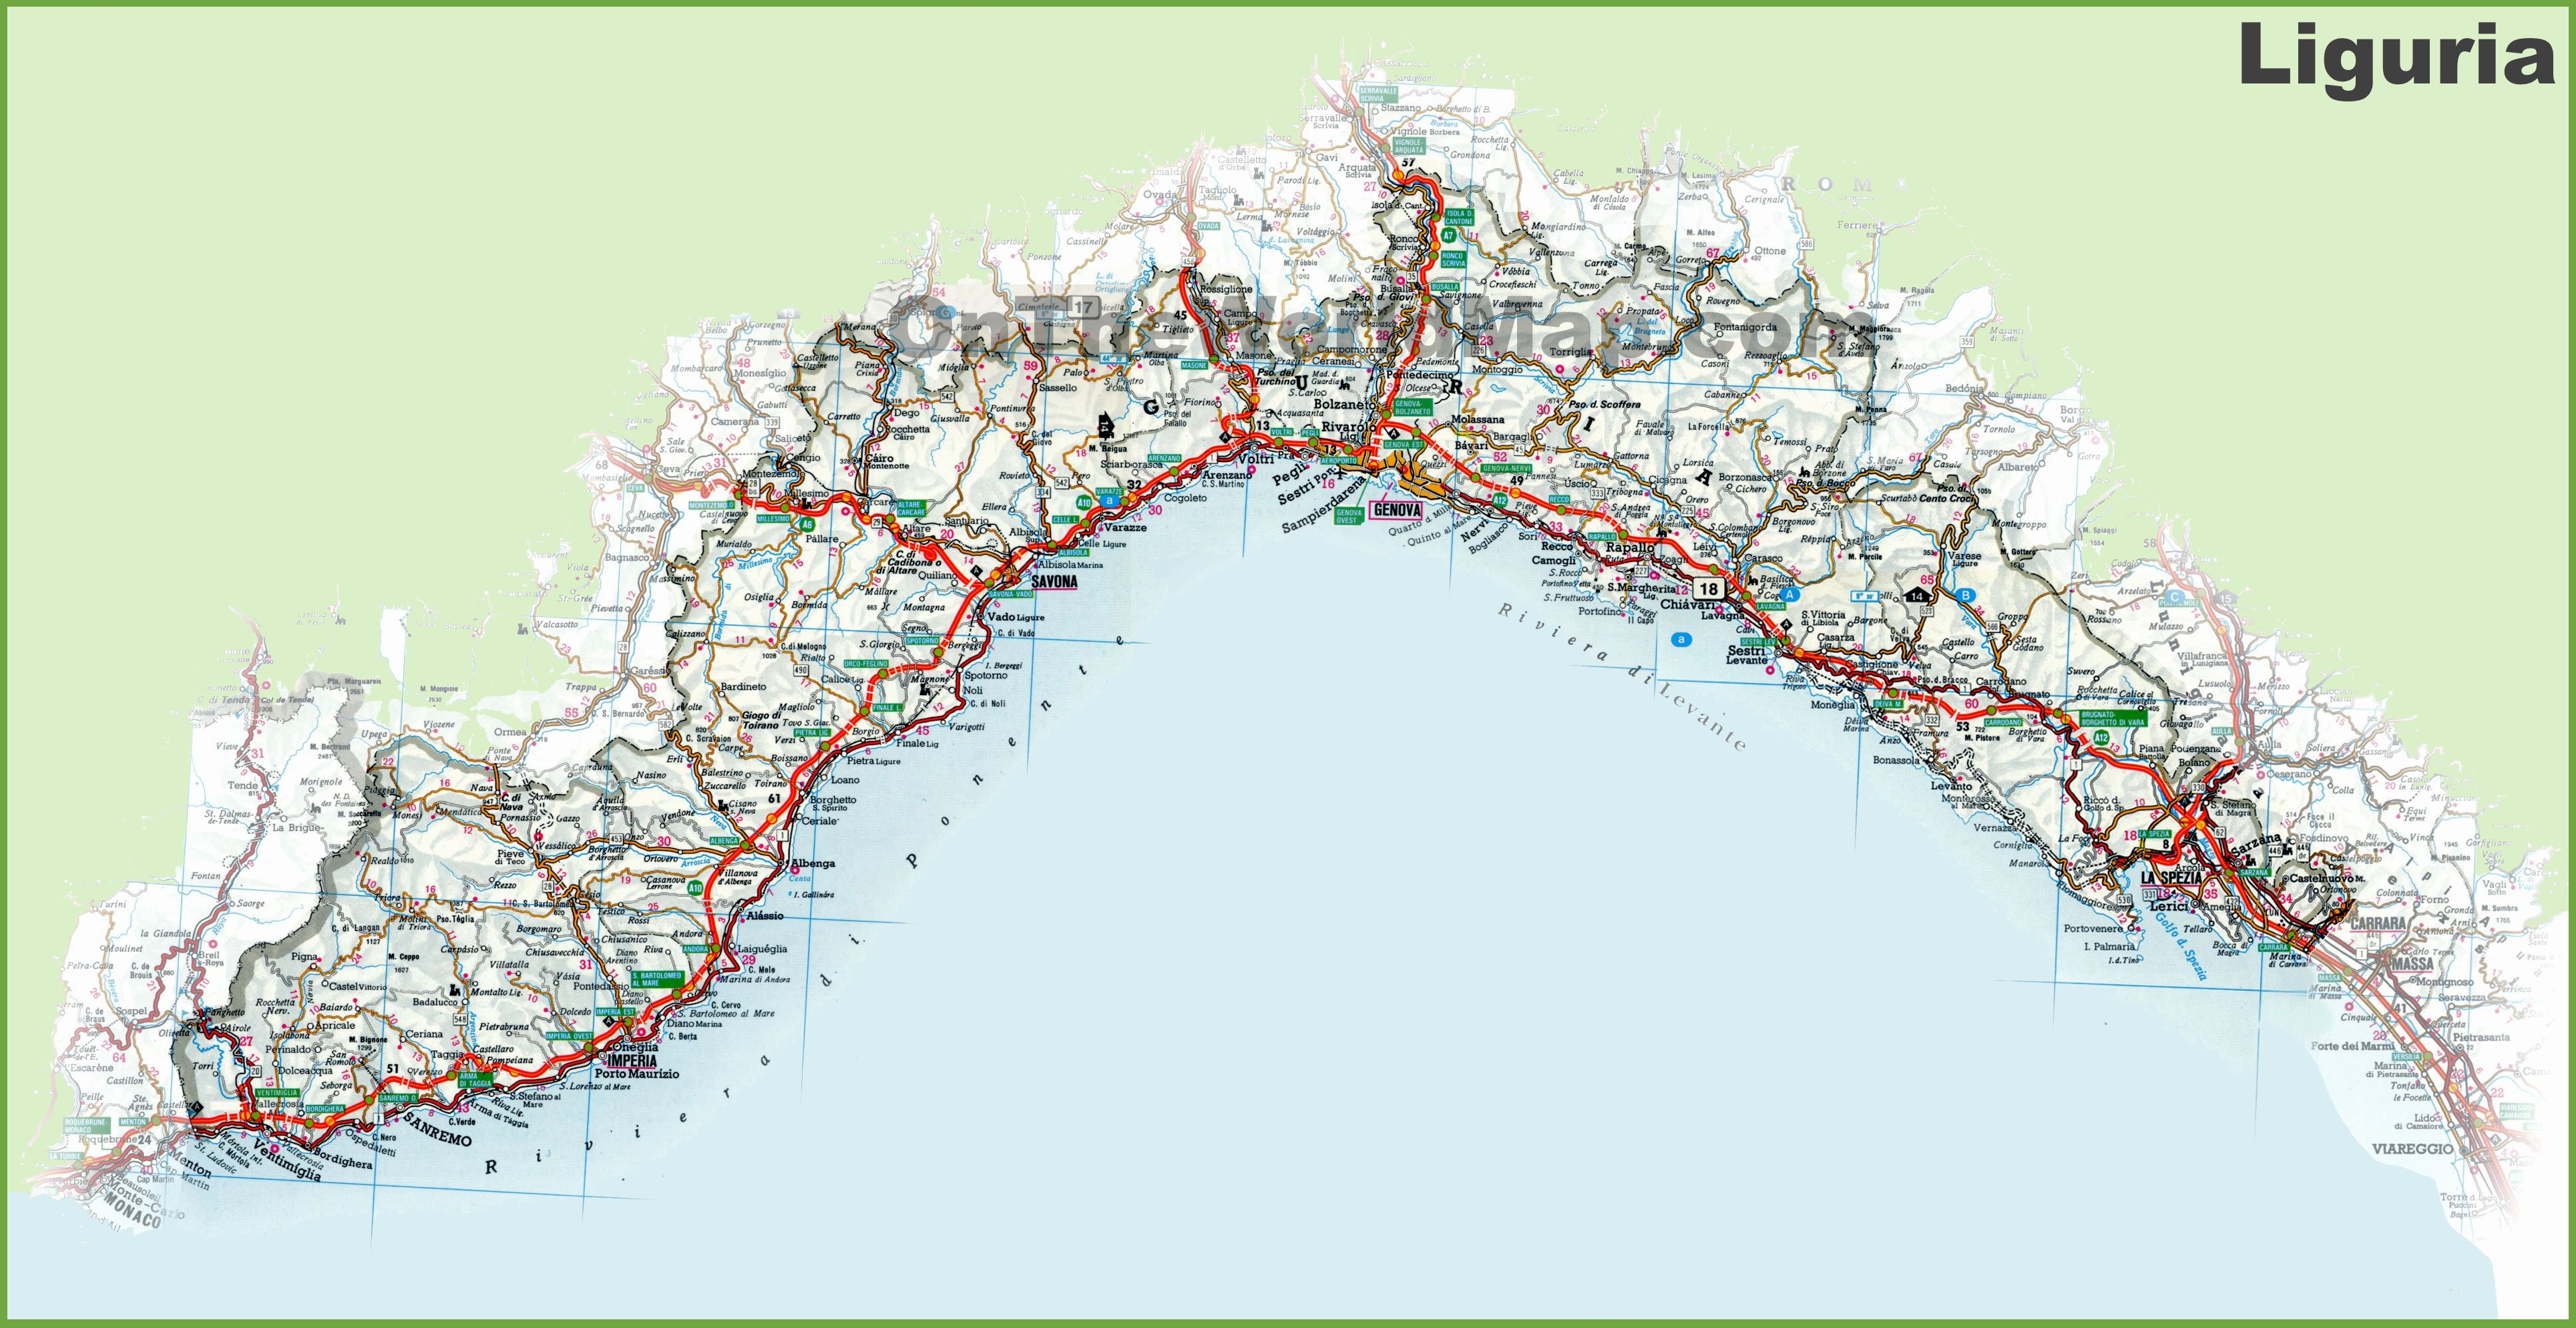 Liguria road map